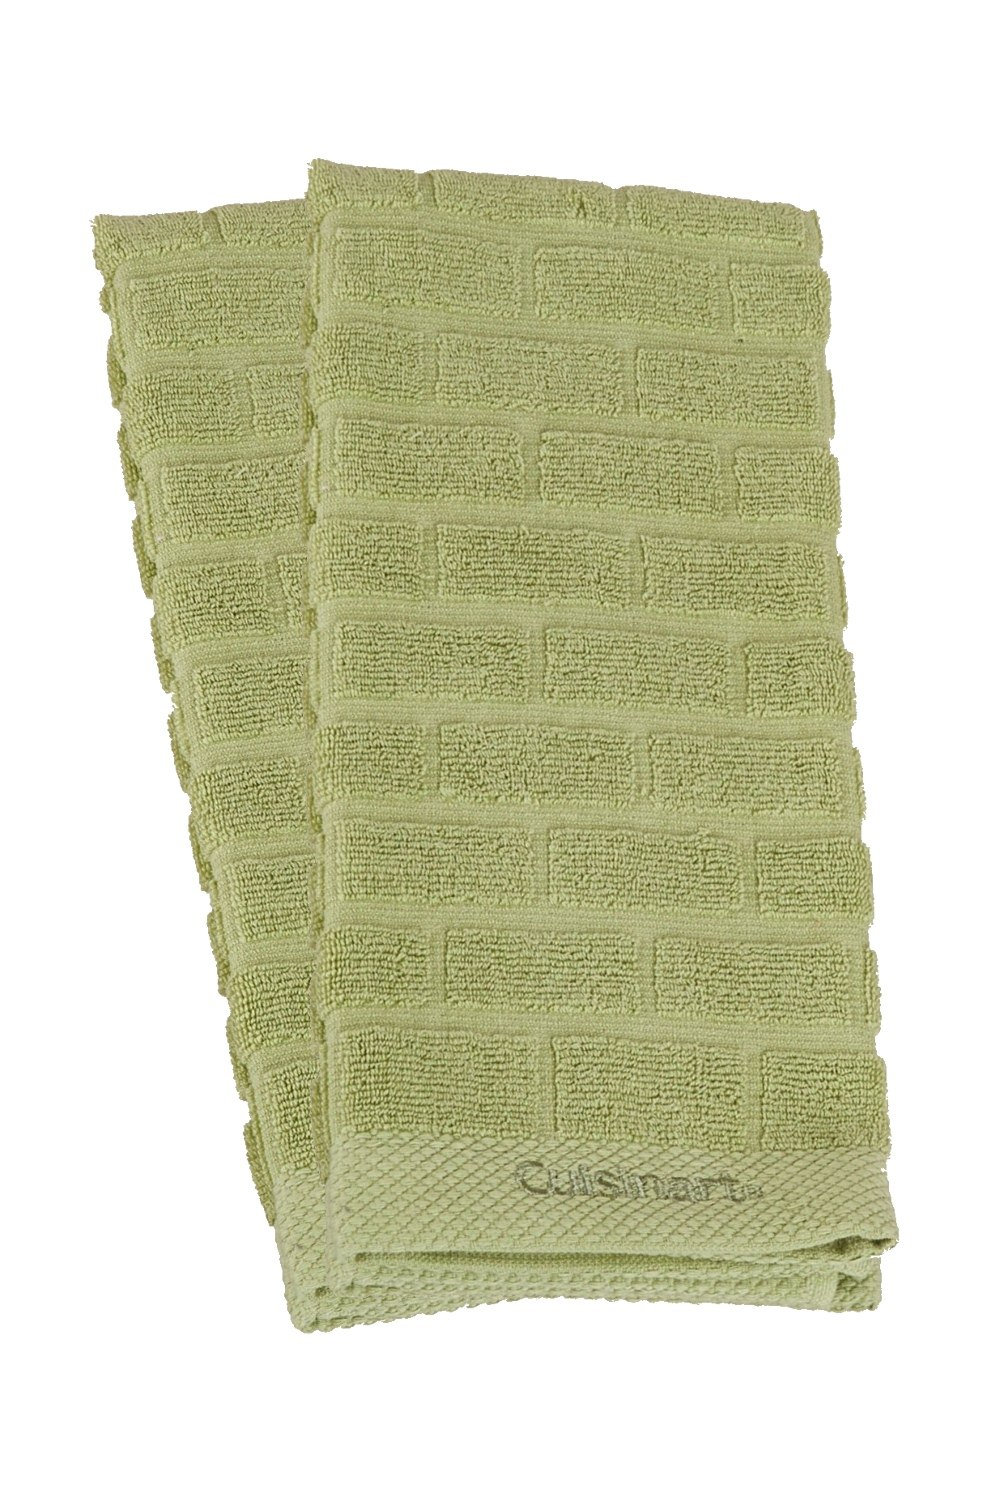 Cuisinart 100% Cotton Terry Super Absorbent Kitchen Towel, Sculpted Subway Tile, Perfect... by Cuisinart